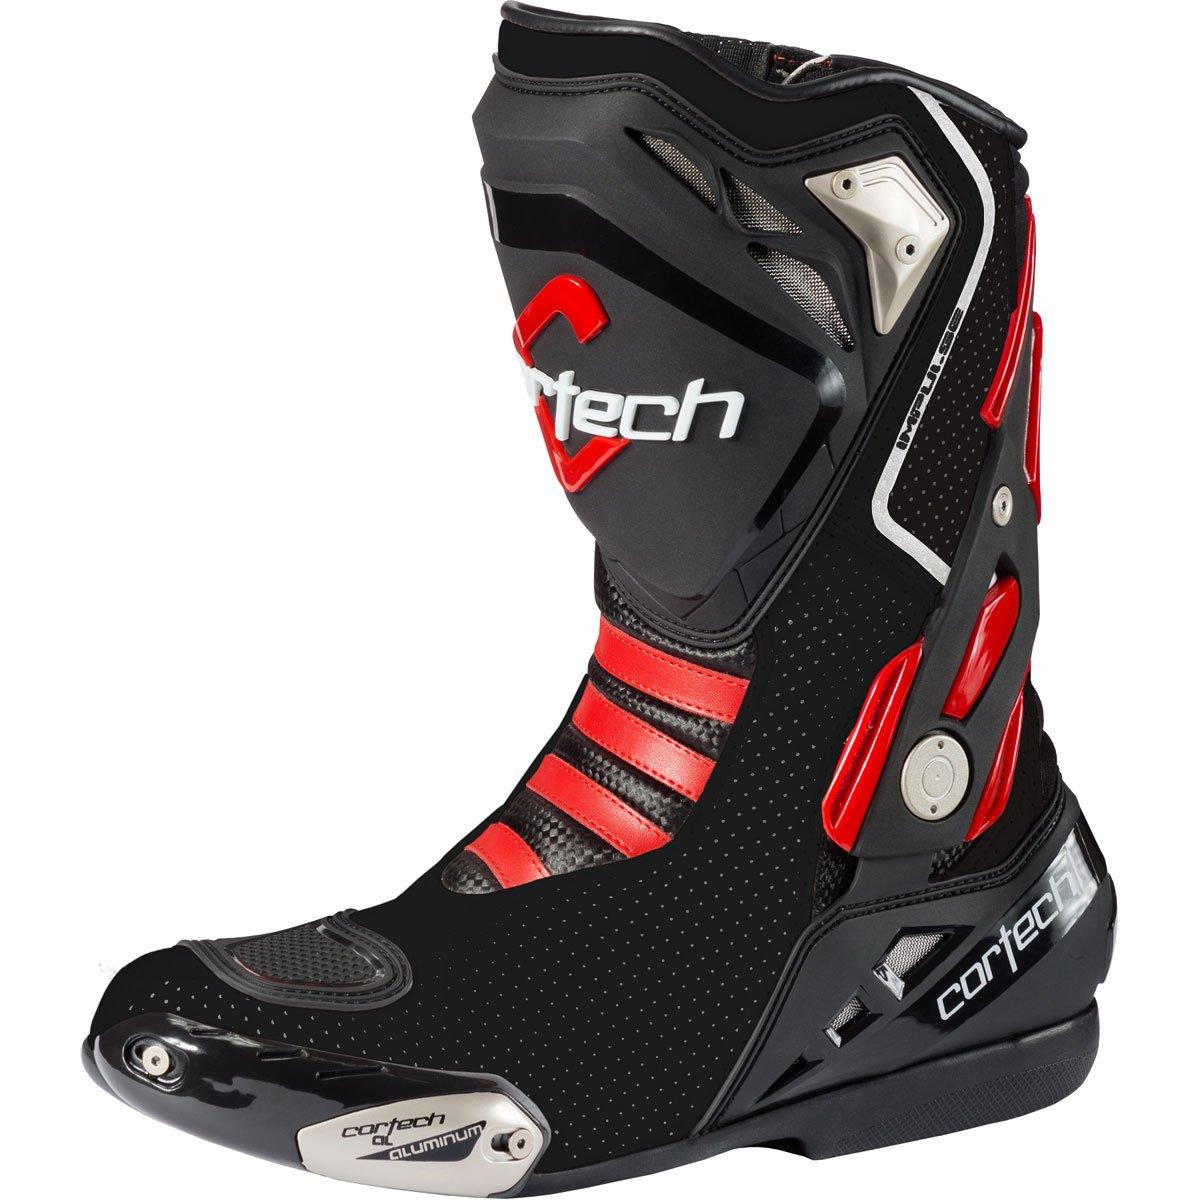 Cortech Men's Impulse Air Road Race Boot(White/Red, Size 11), 1 Pack 8514-0001-45